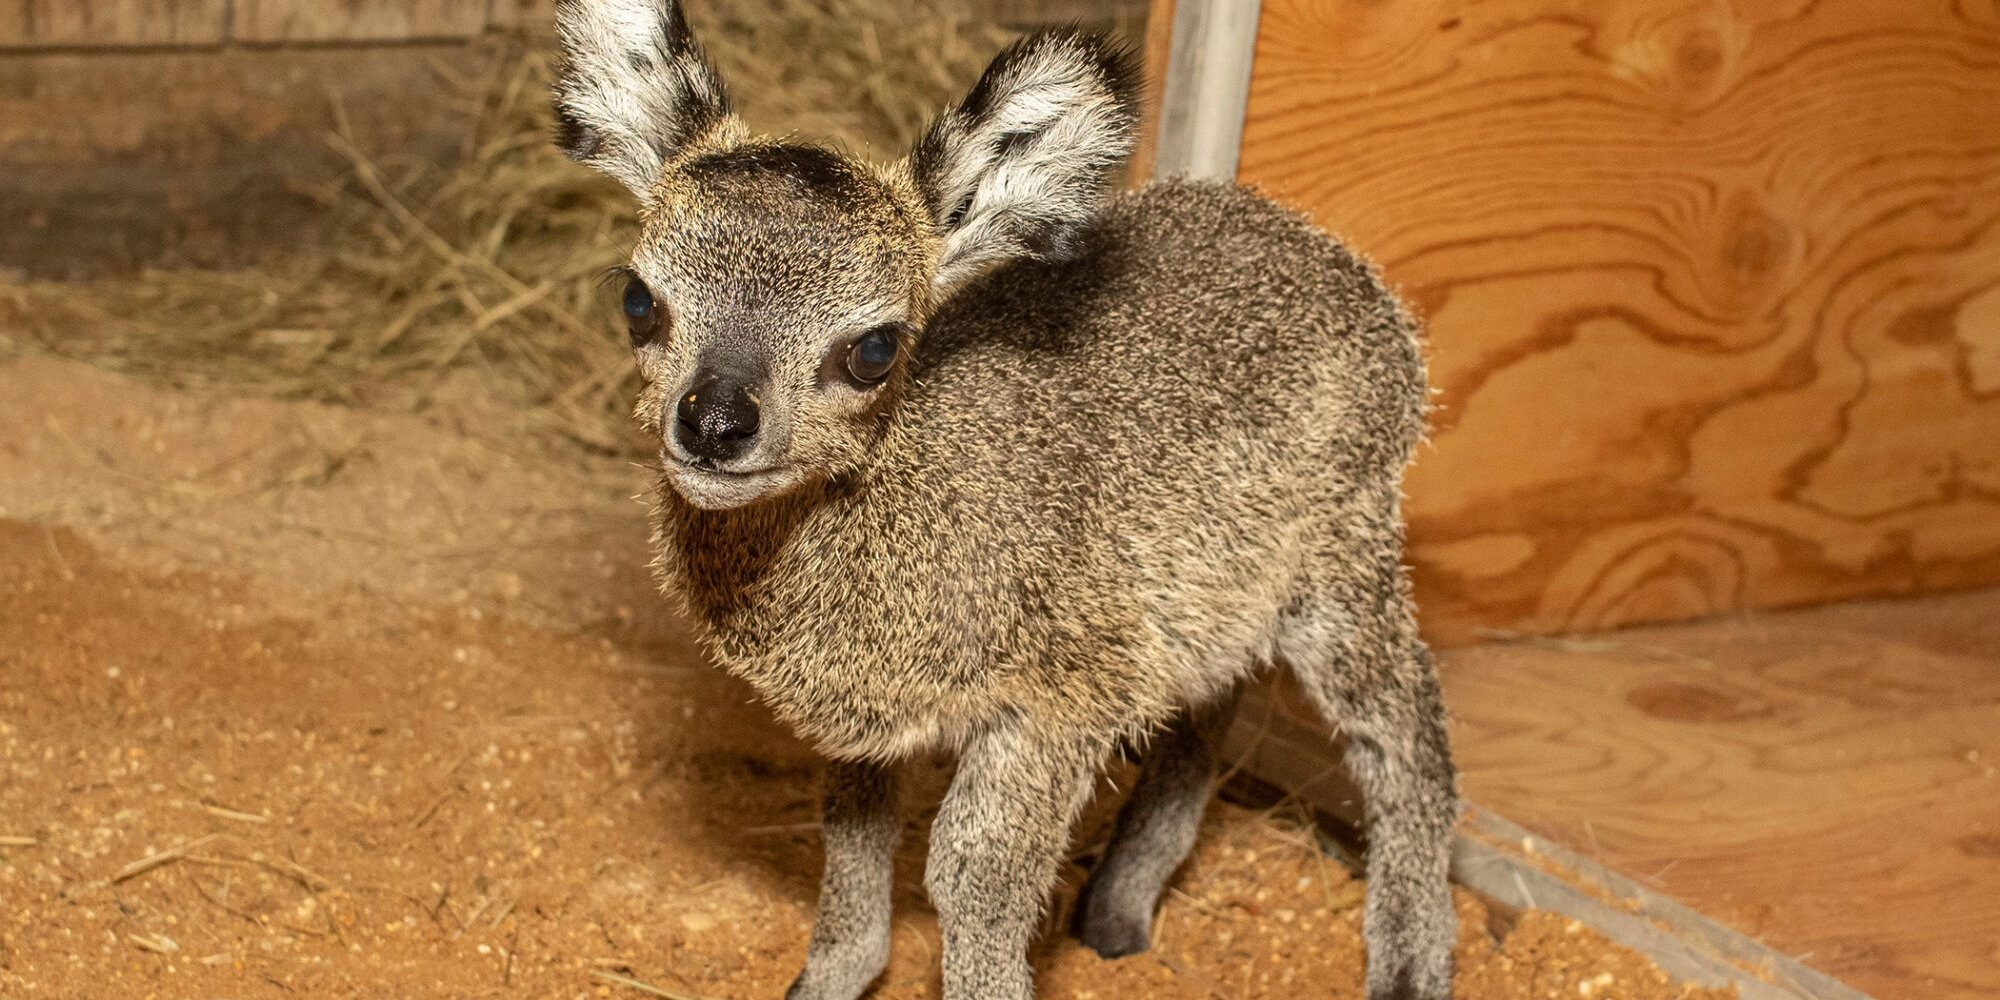 Meet the Cutest Lil' Baby Antelope You've Ever Seen